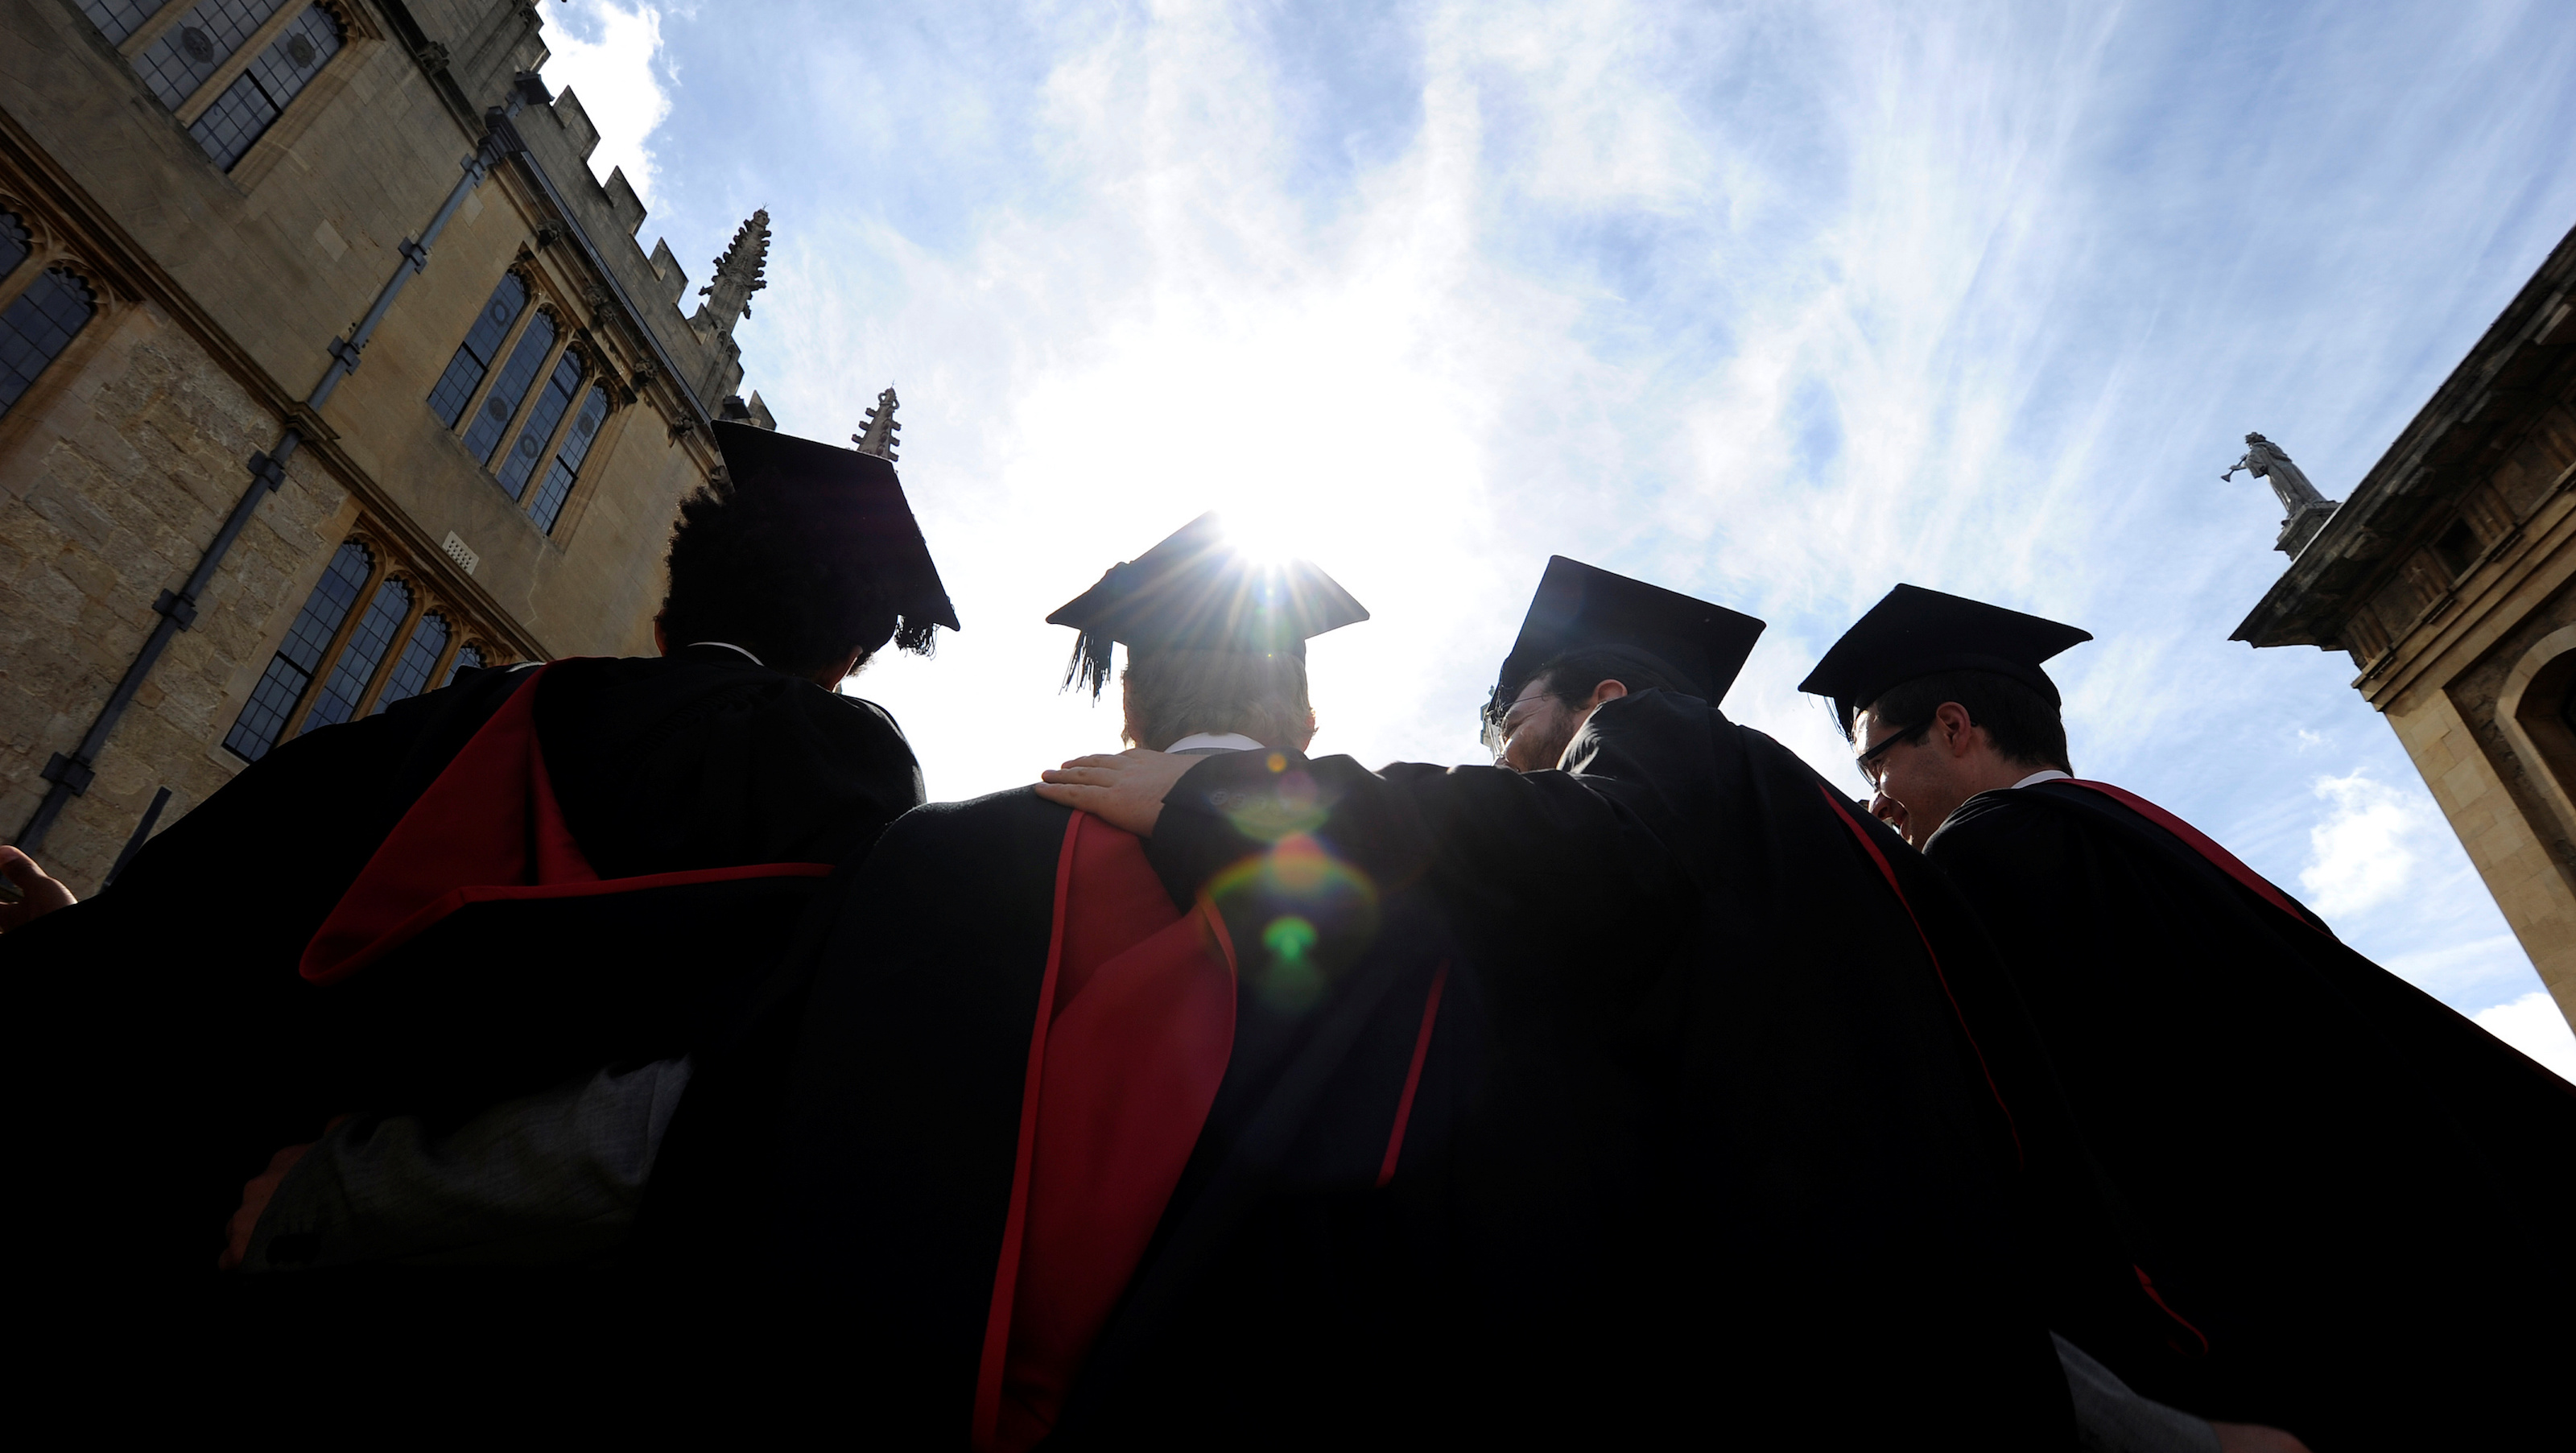 A group of graduates gather outside the Sheldonian Theatre to have their photograph taken after a graduation ceremony at Oxford University, Oxford, England, May 28, 2011. REUTERS/Paul Hackett/File Photo - RTX2IVBS